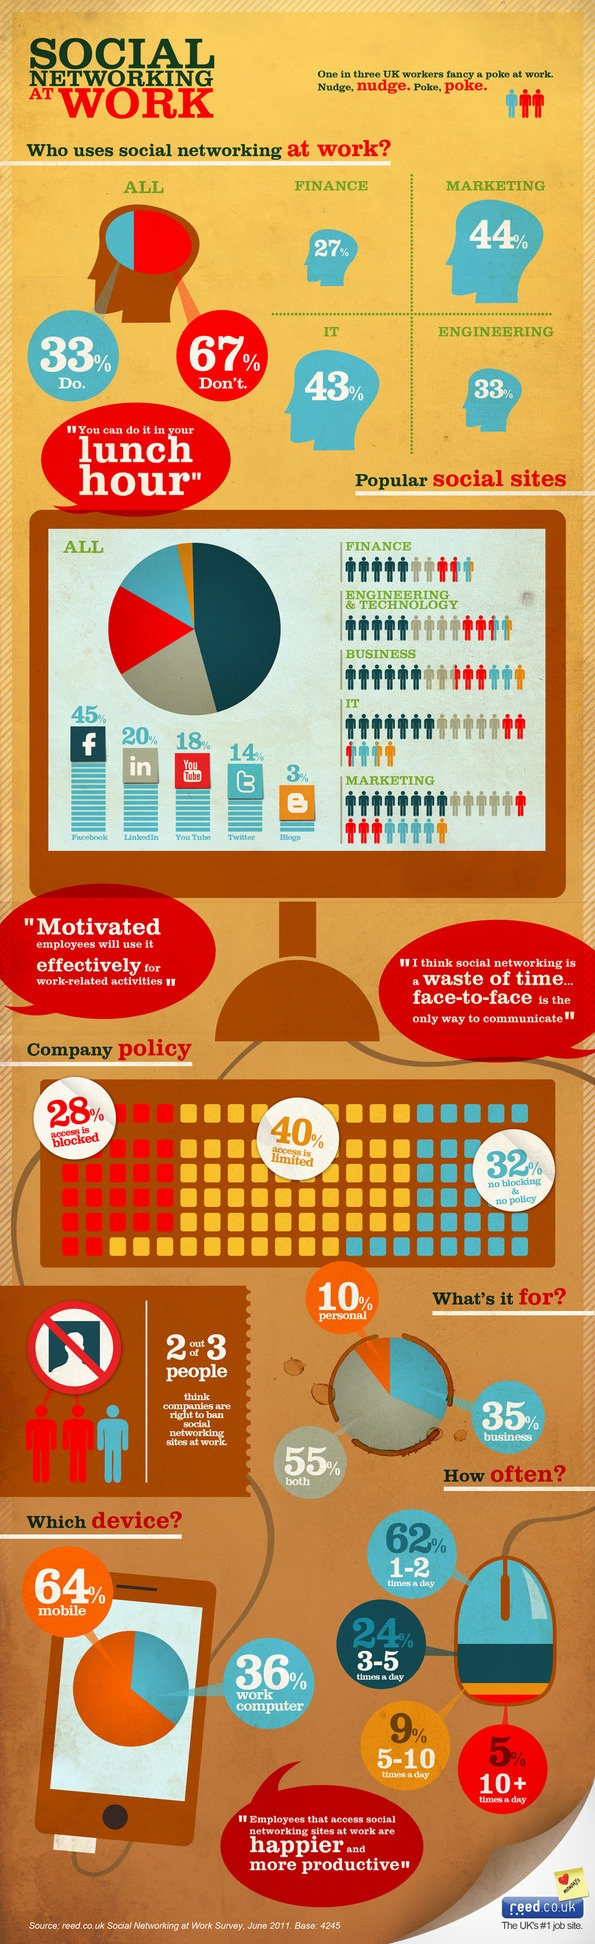 Infographic: Using Social Media at Work